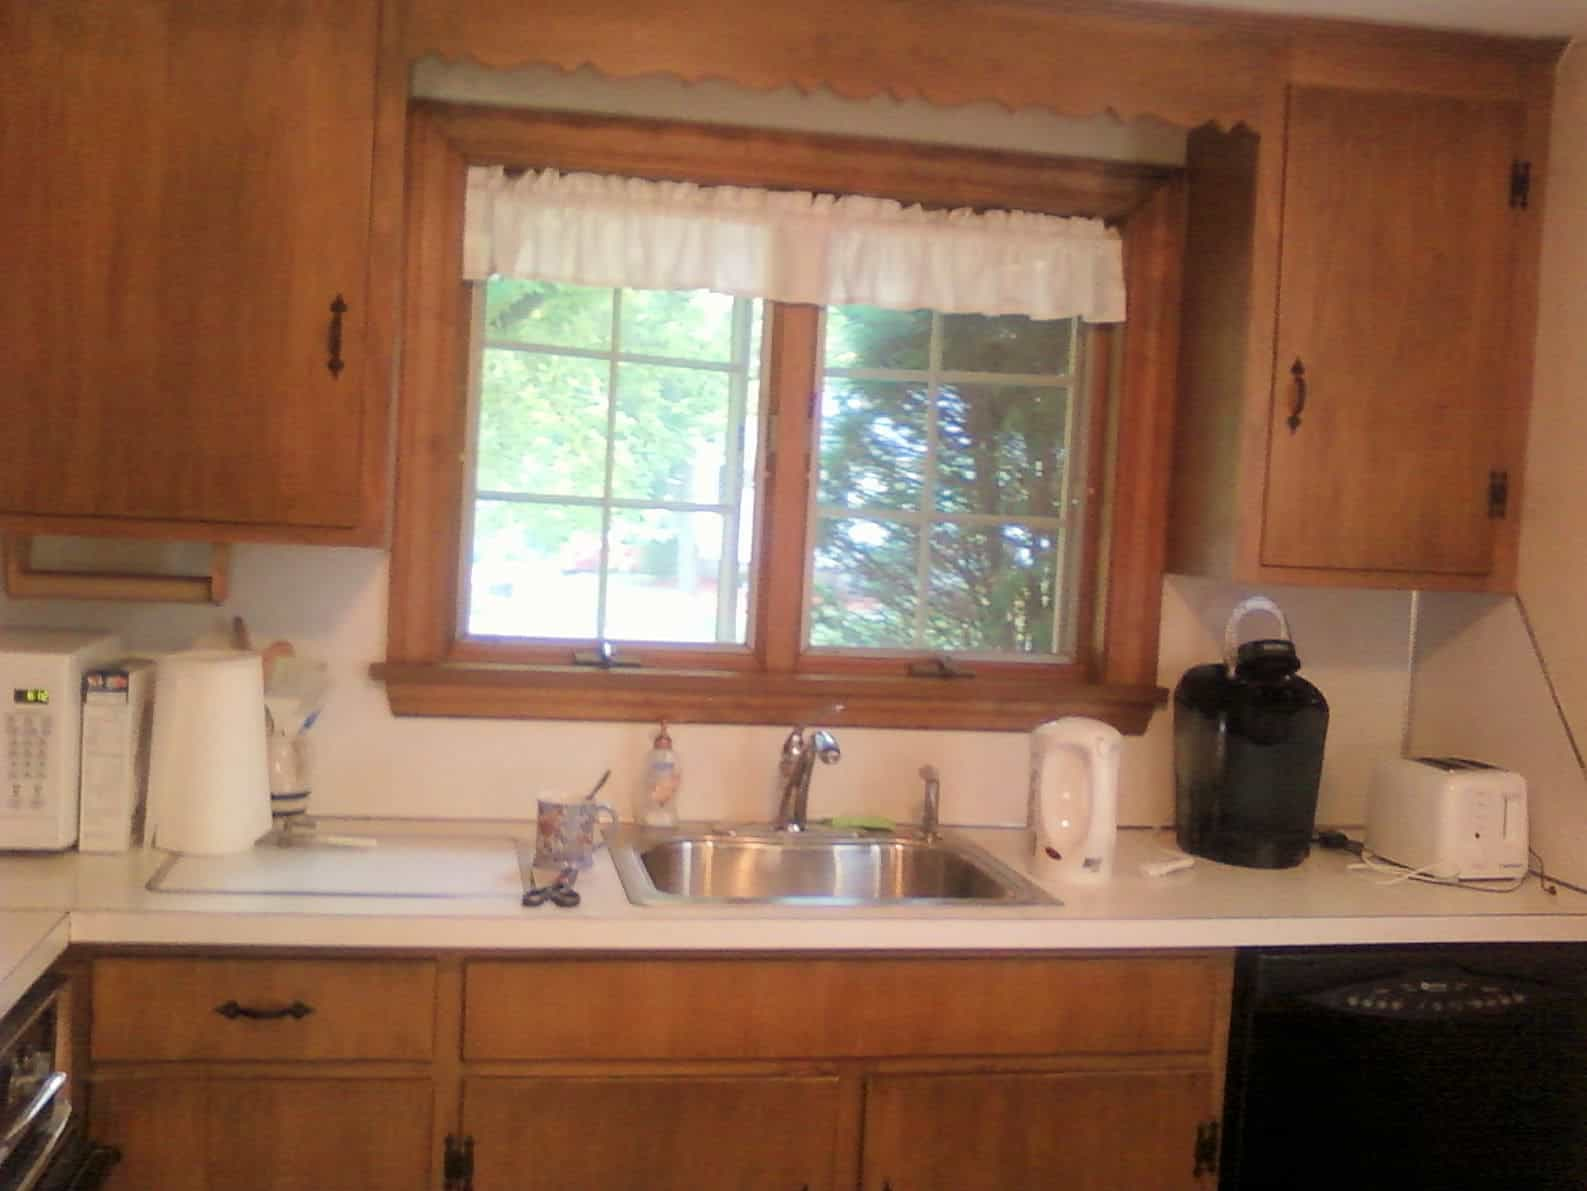 Kitchen Remodel Ikea Cabinets Lowe S Home Depot Small